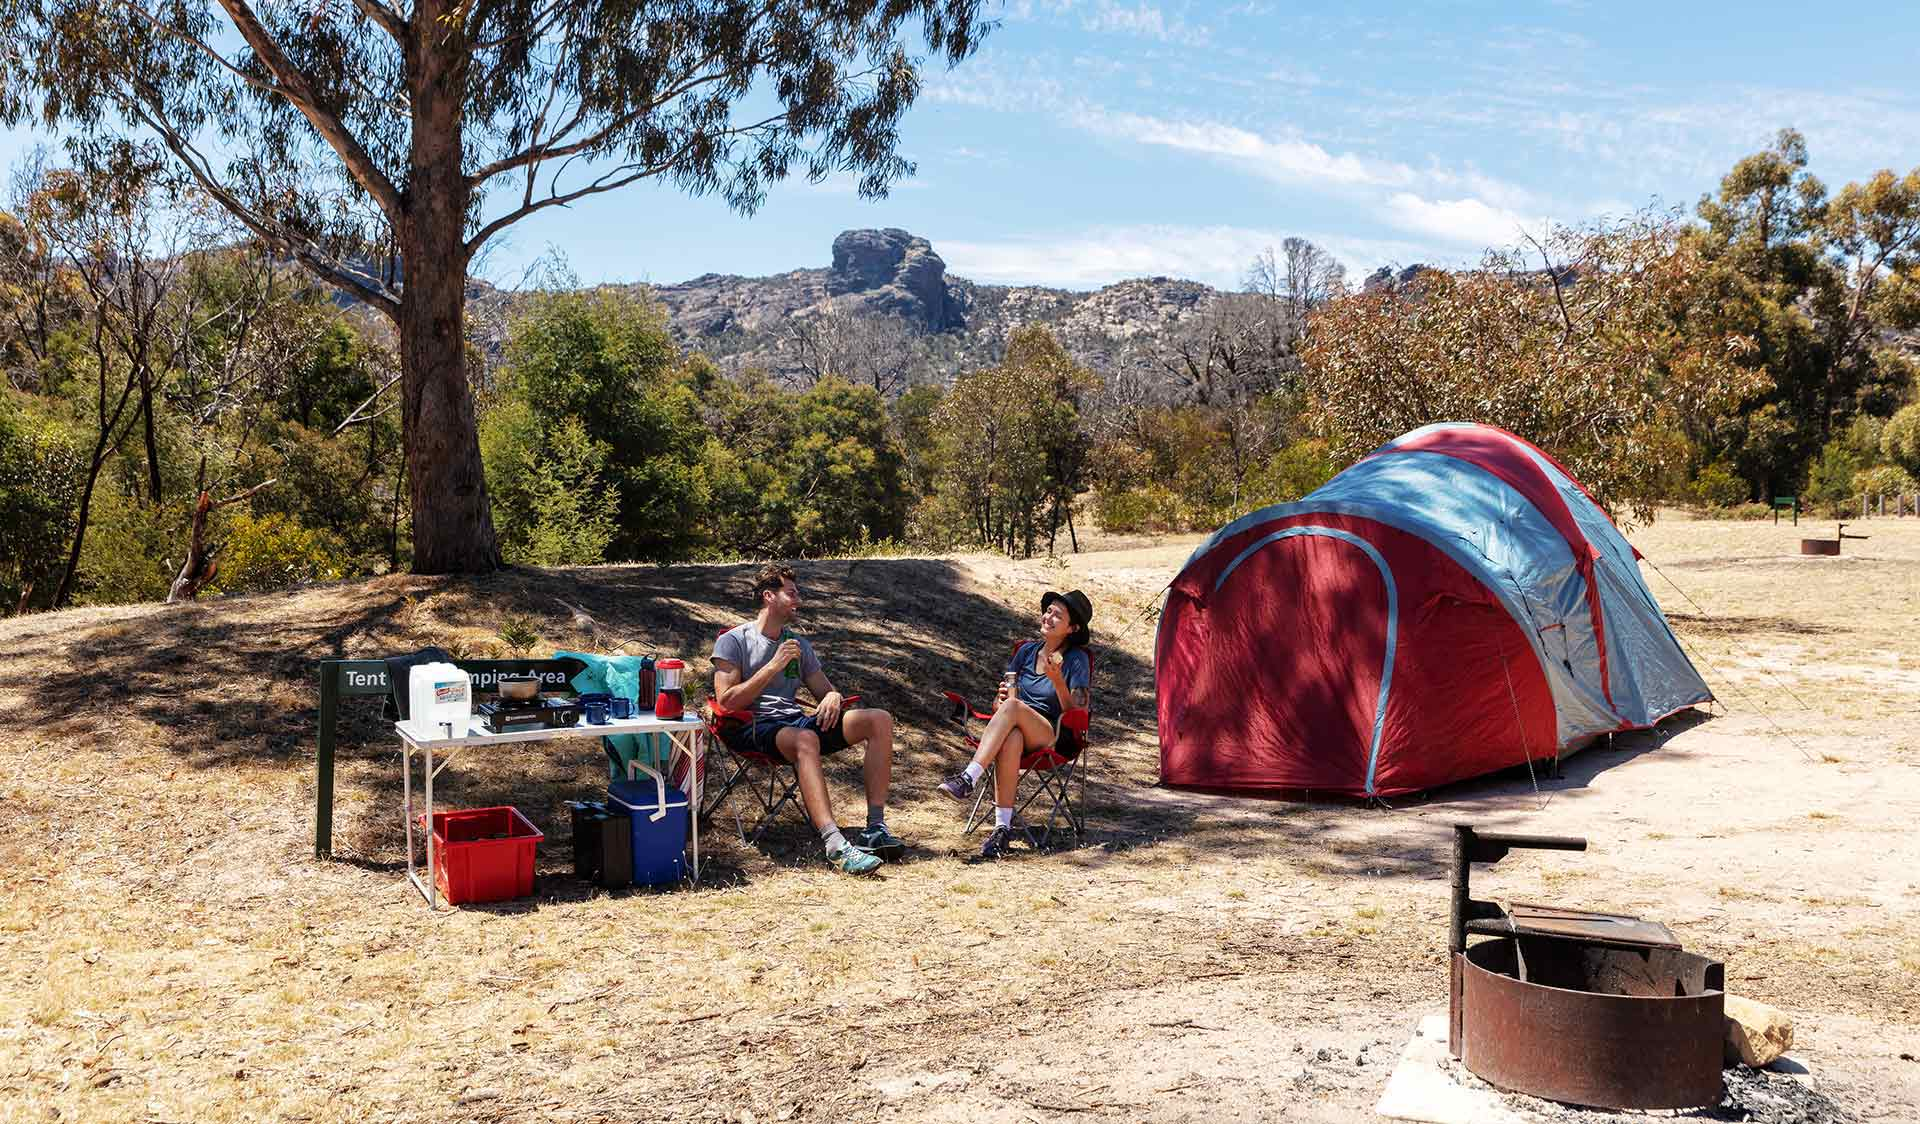 A couple in their twenties camp at the Mt Stapylton Campground in the Grampians National Park.